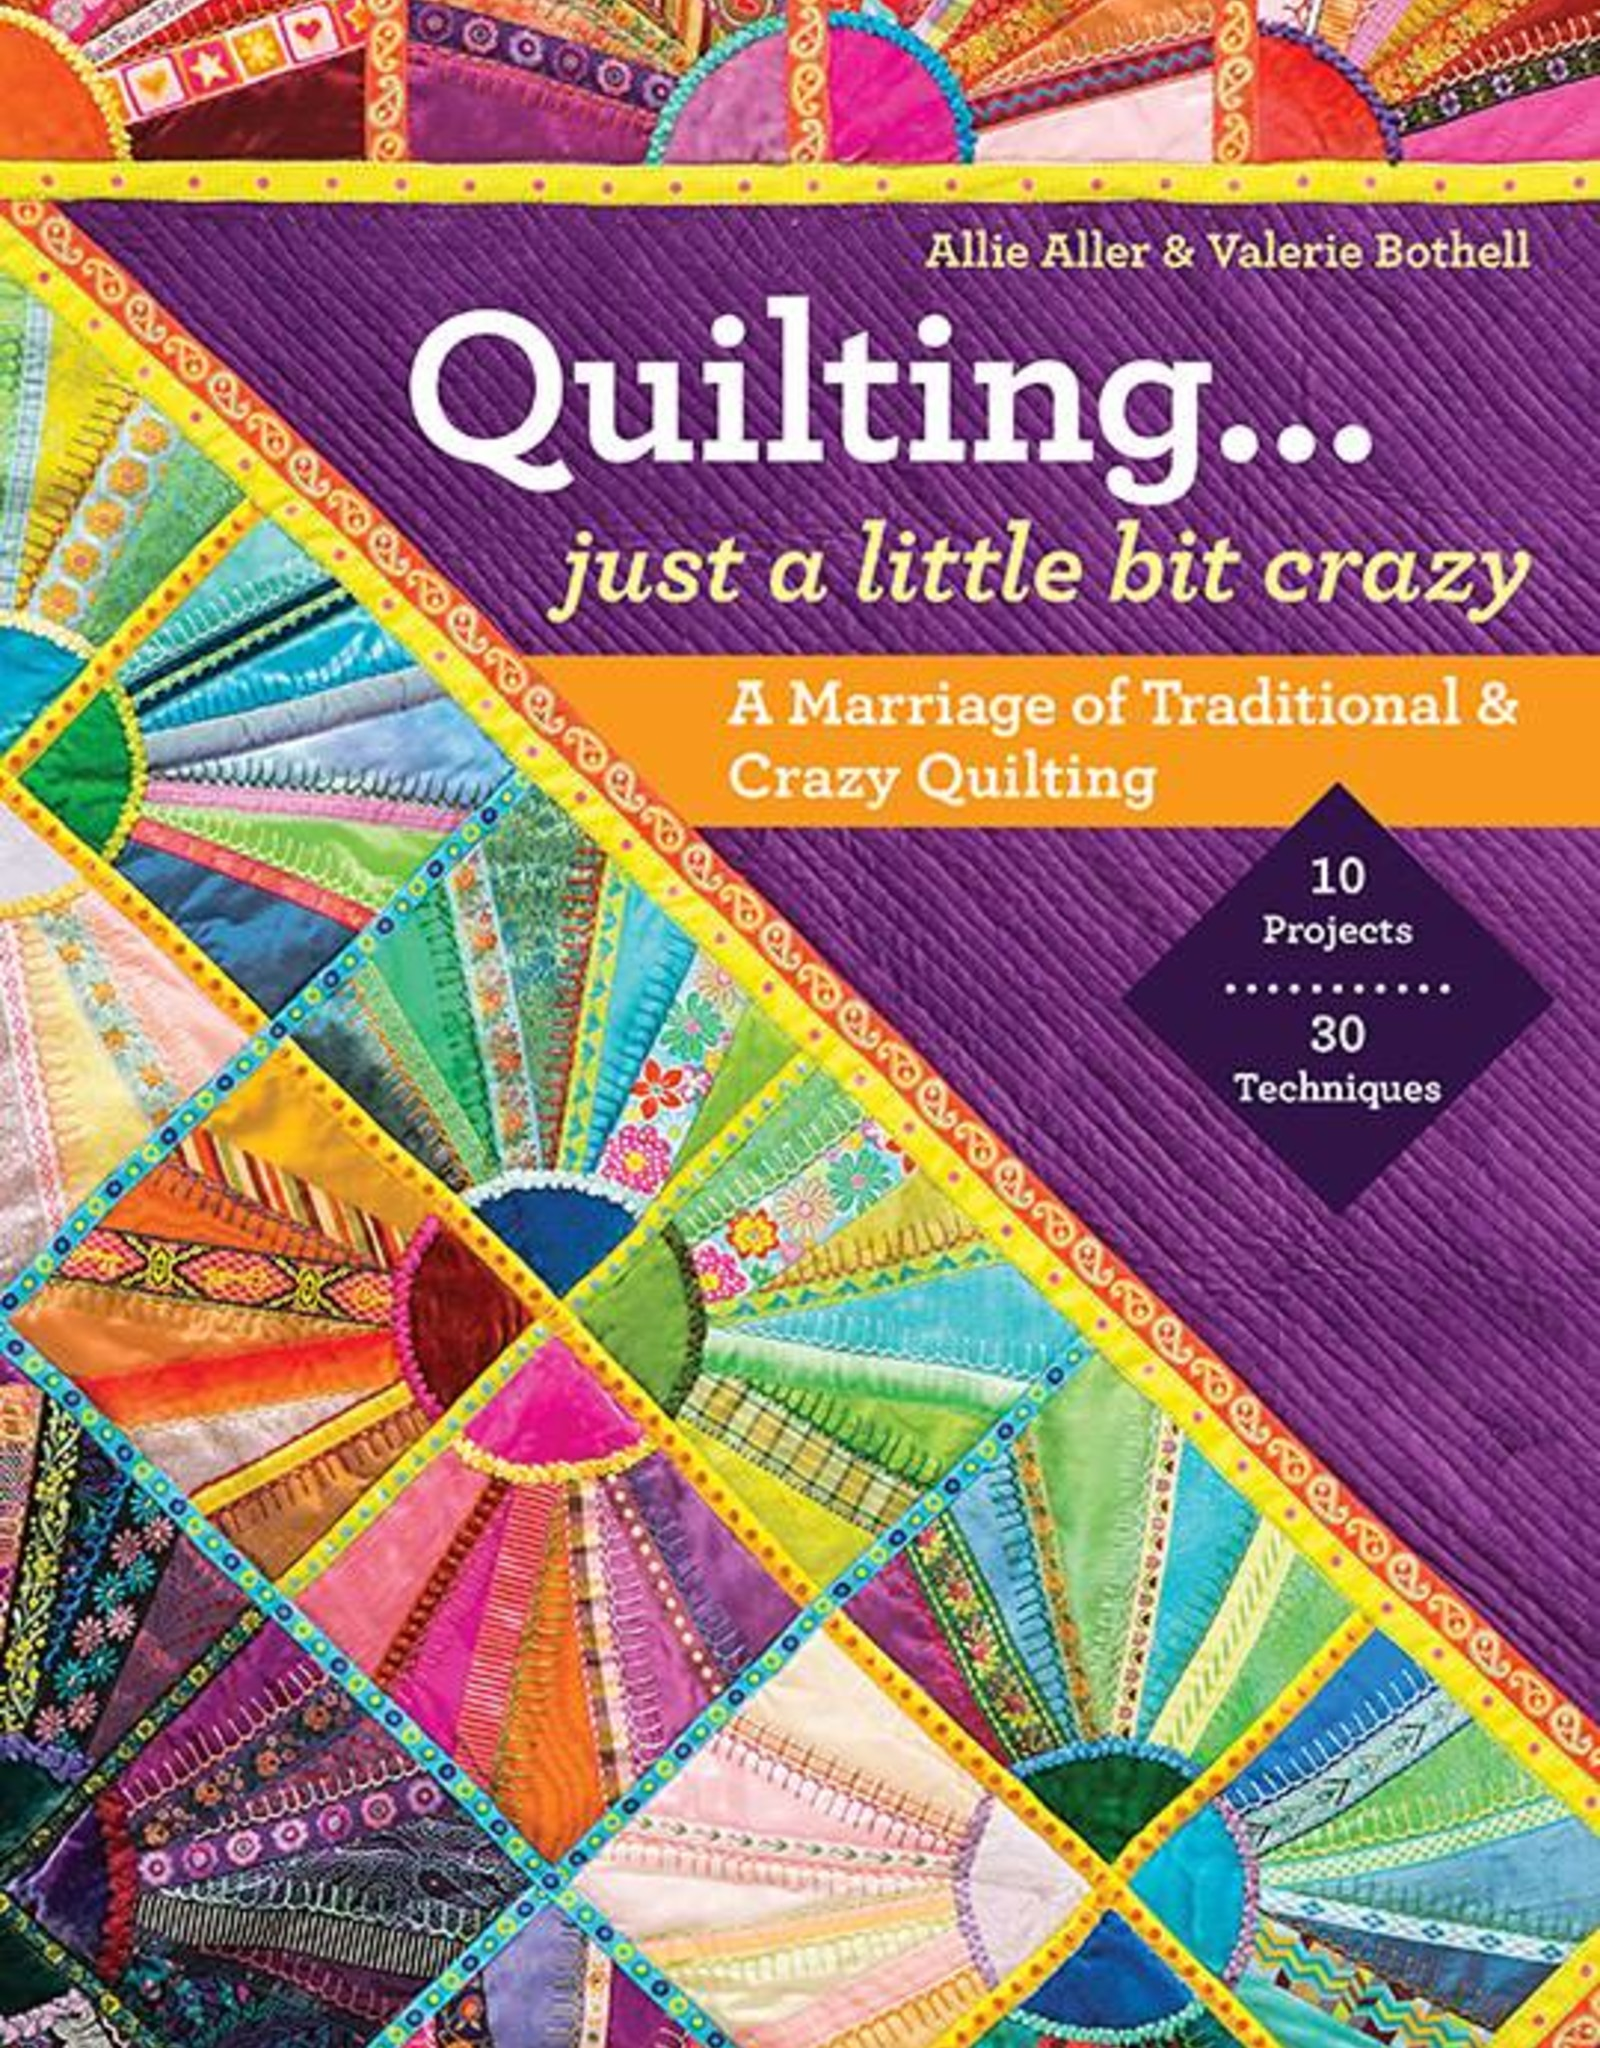 Quilting... Just a Little Bit Crazy by Allie Aller and Valerie Bothell